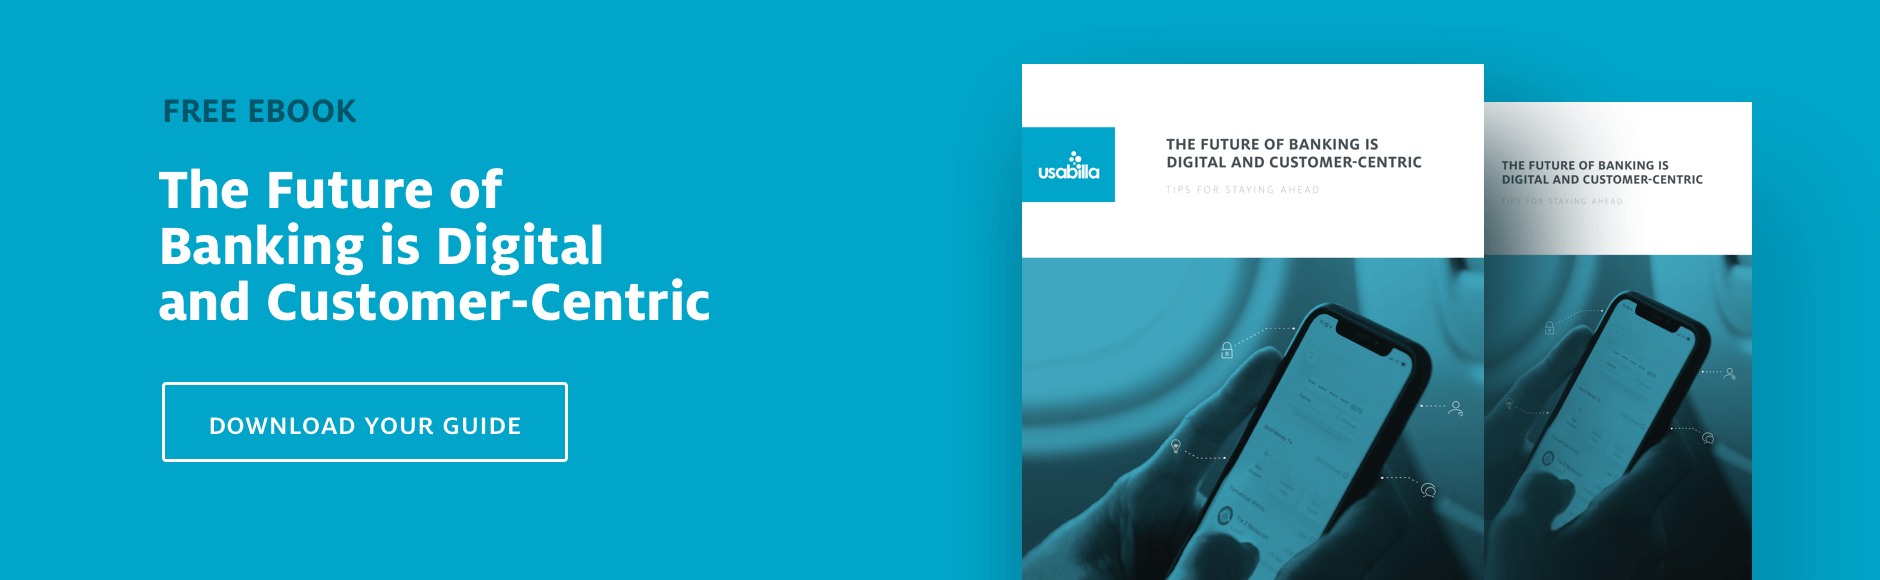 Free Ebook - The Future of Banking is Digital and Customer-Centric